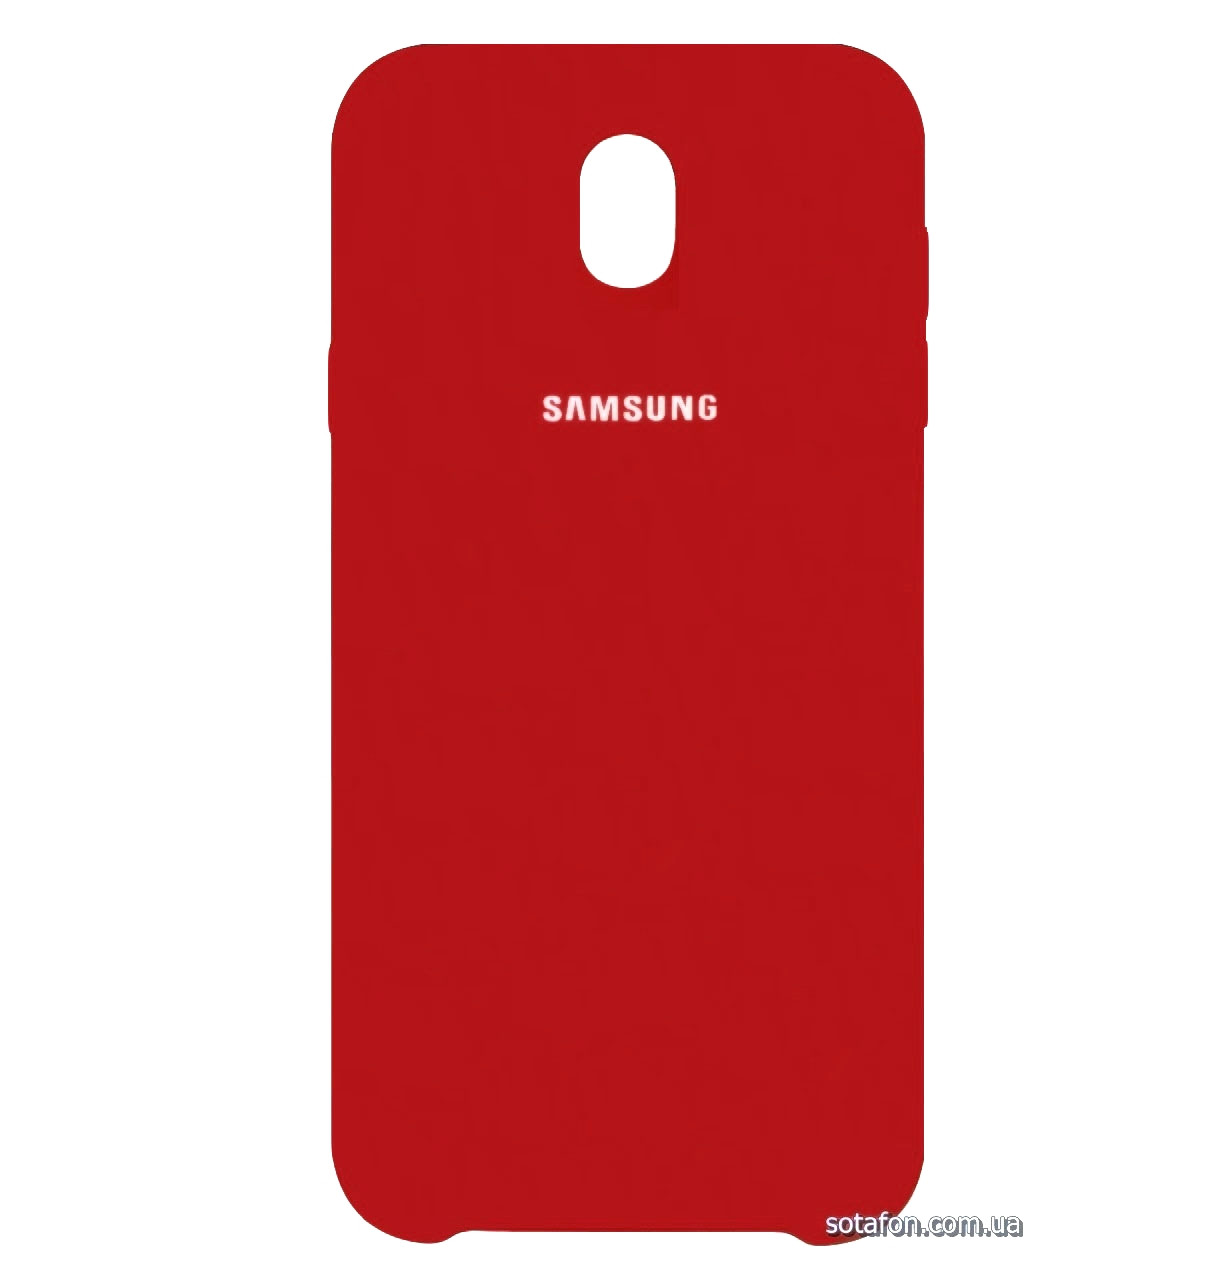 Чехол-накладка Original Silicone case на Samsung Galaxy J7 (2017) SM-J730F Dark Red